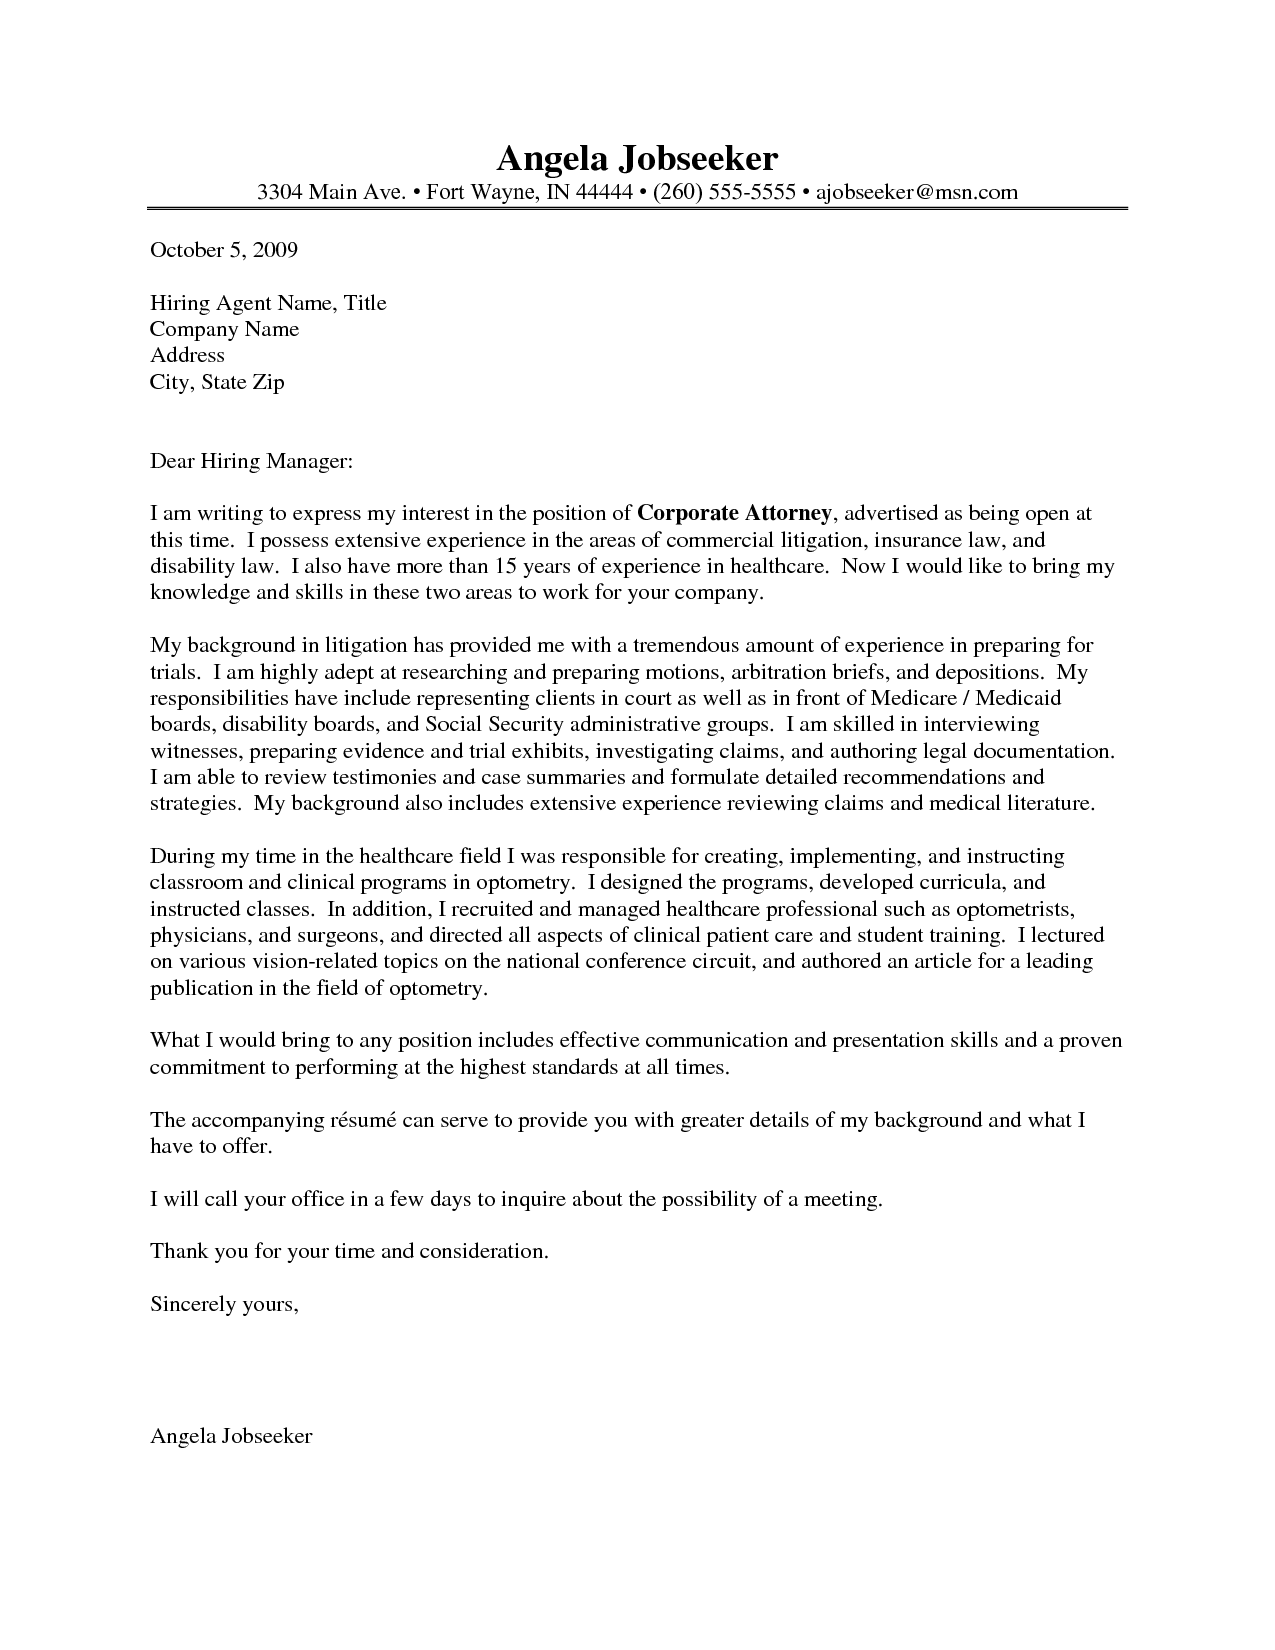 Cover Letter Template Legal | Cover letter example, Cover ...